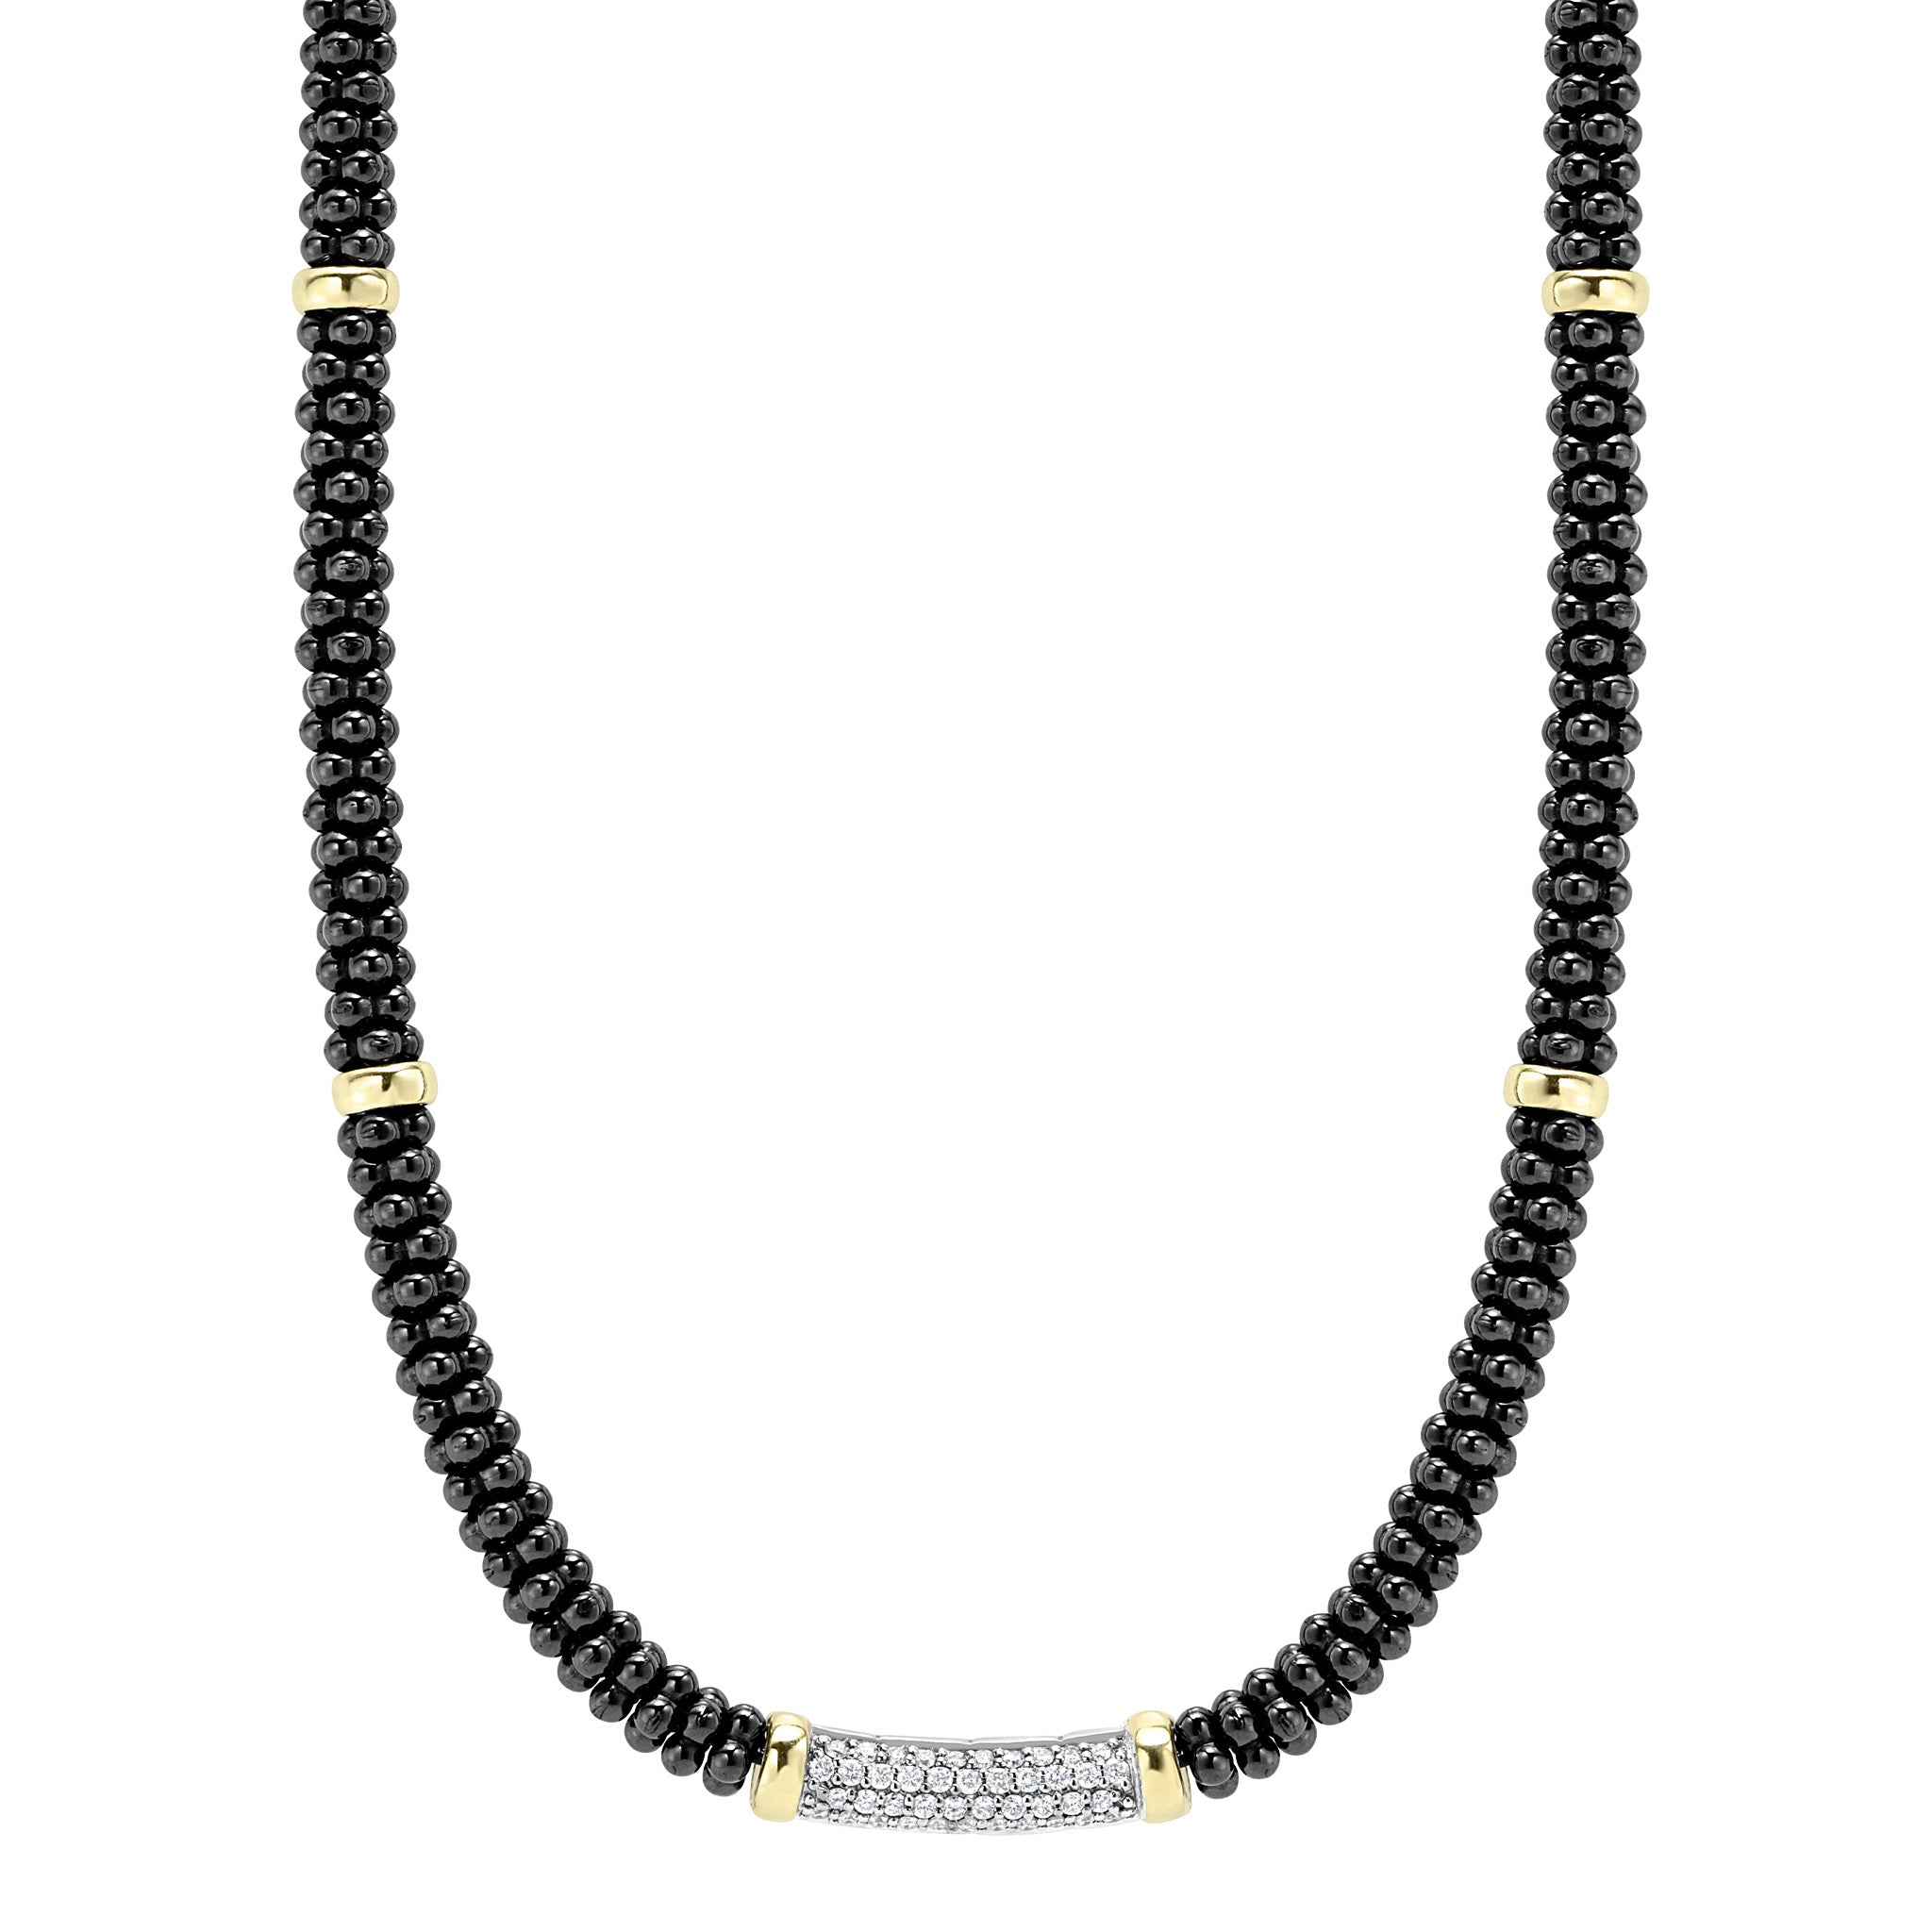 Lagos 'Black Caviar' Diamond Beaded Necklace